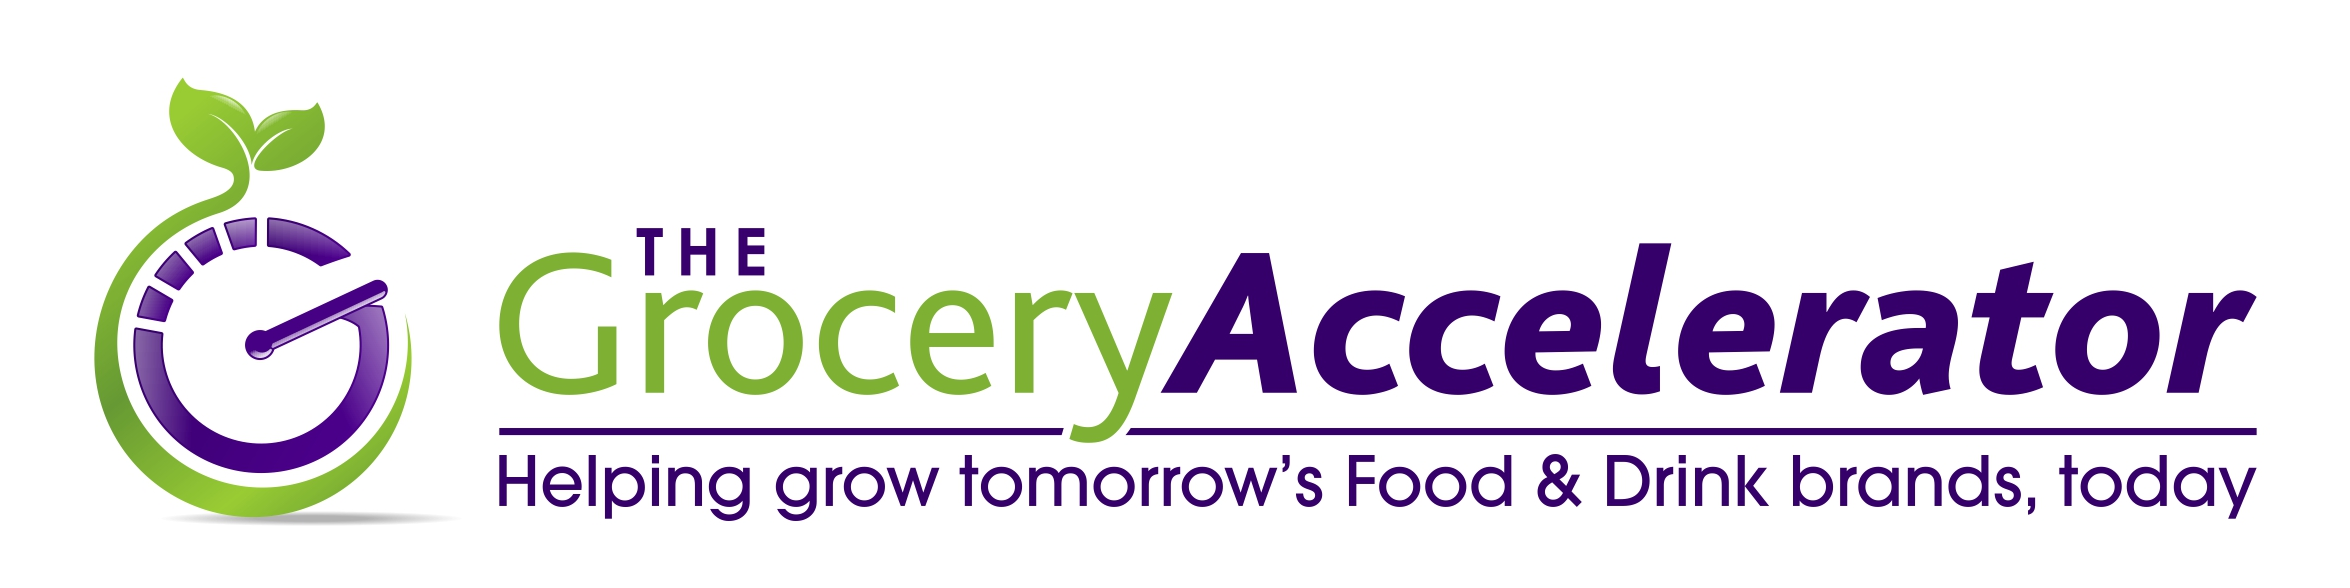 Grocery Accelerator.png